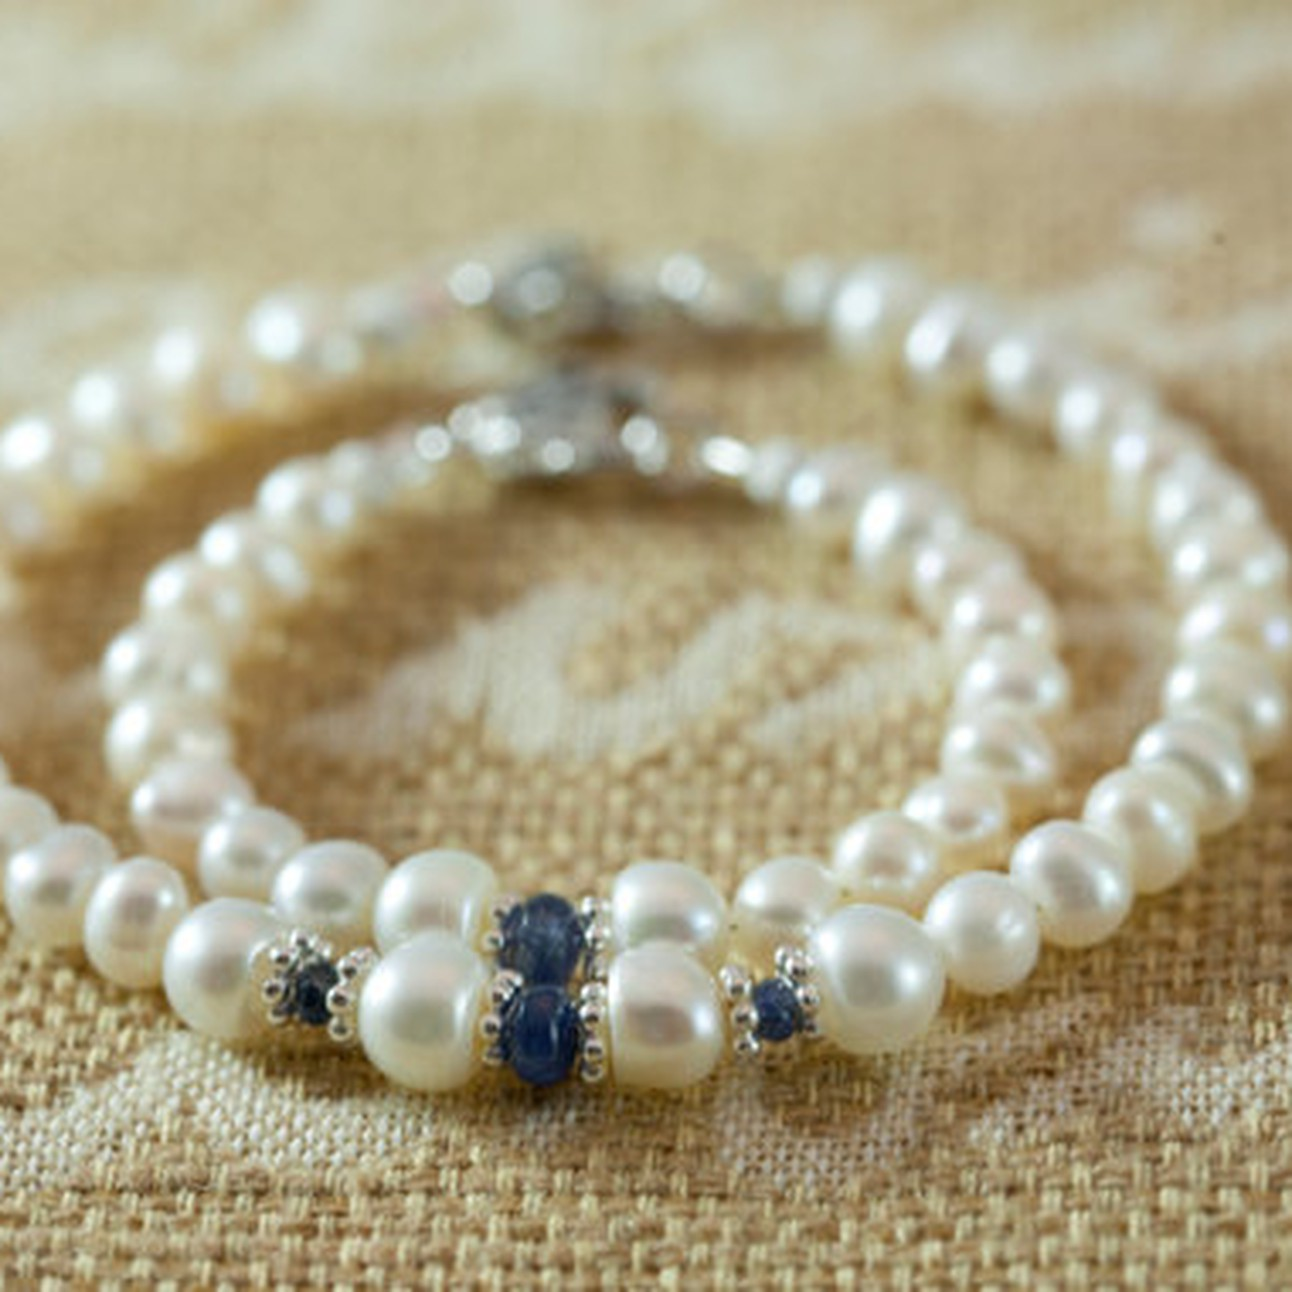 d12a178e2 Personalized Natural Genuine Sapphire and Pearl Bracelet set, Handmade Baby  Shower Gift, September Birthstone